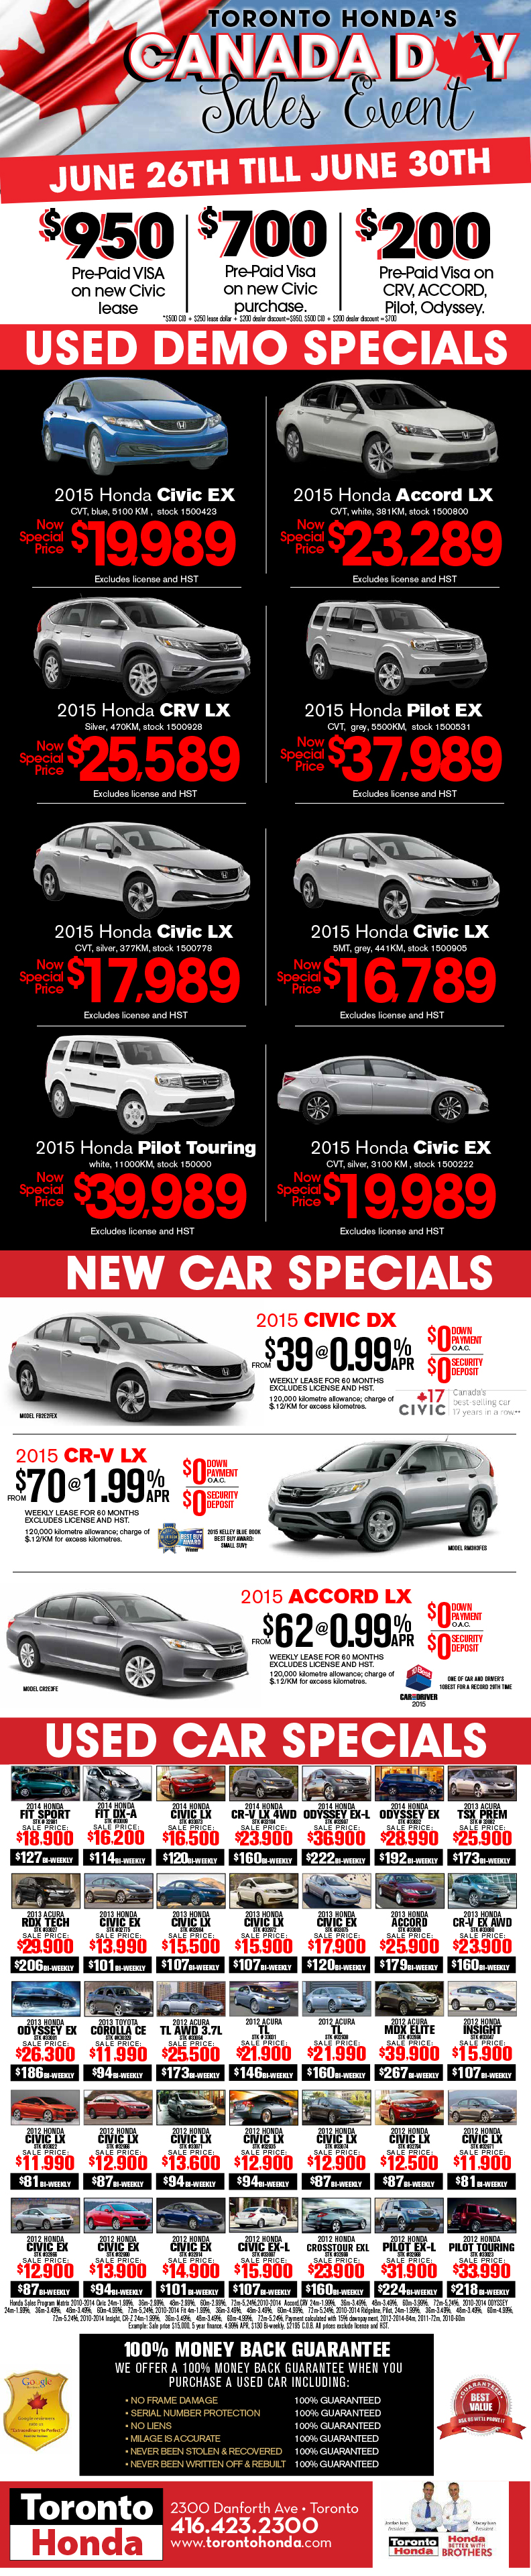 Canada Day Sales Event: June 26th til June 30th